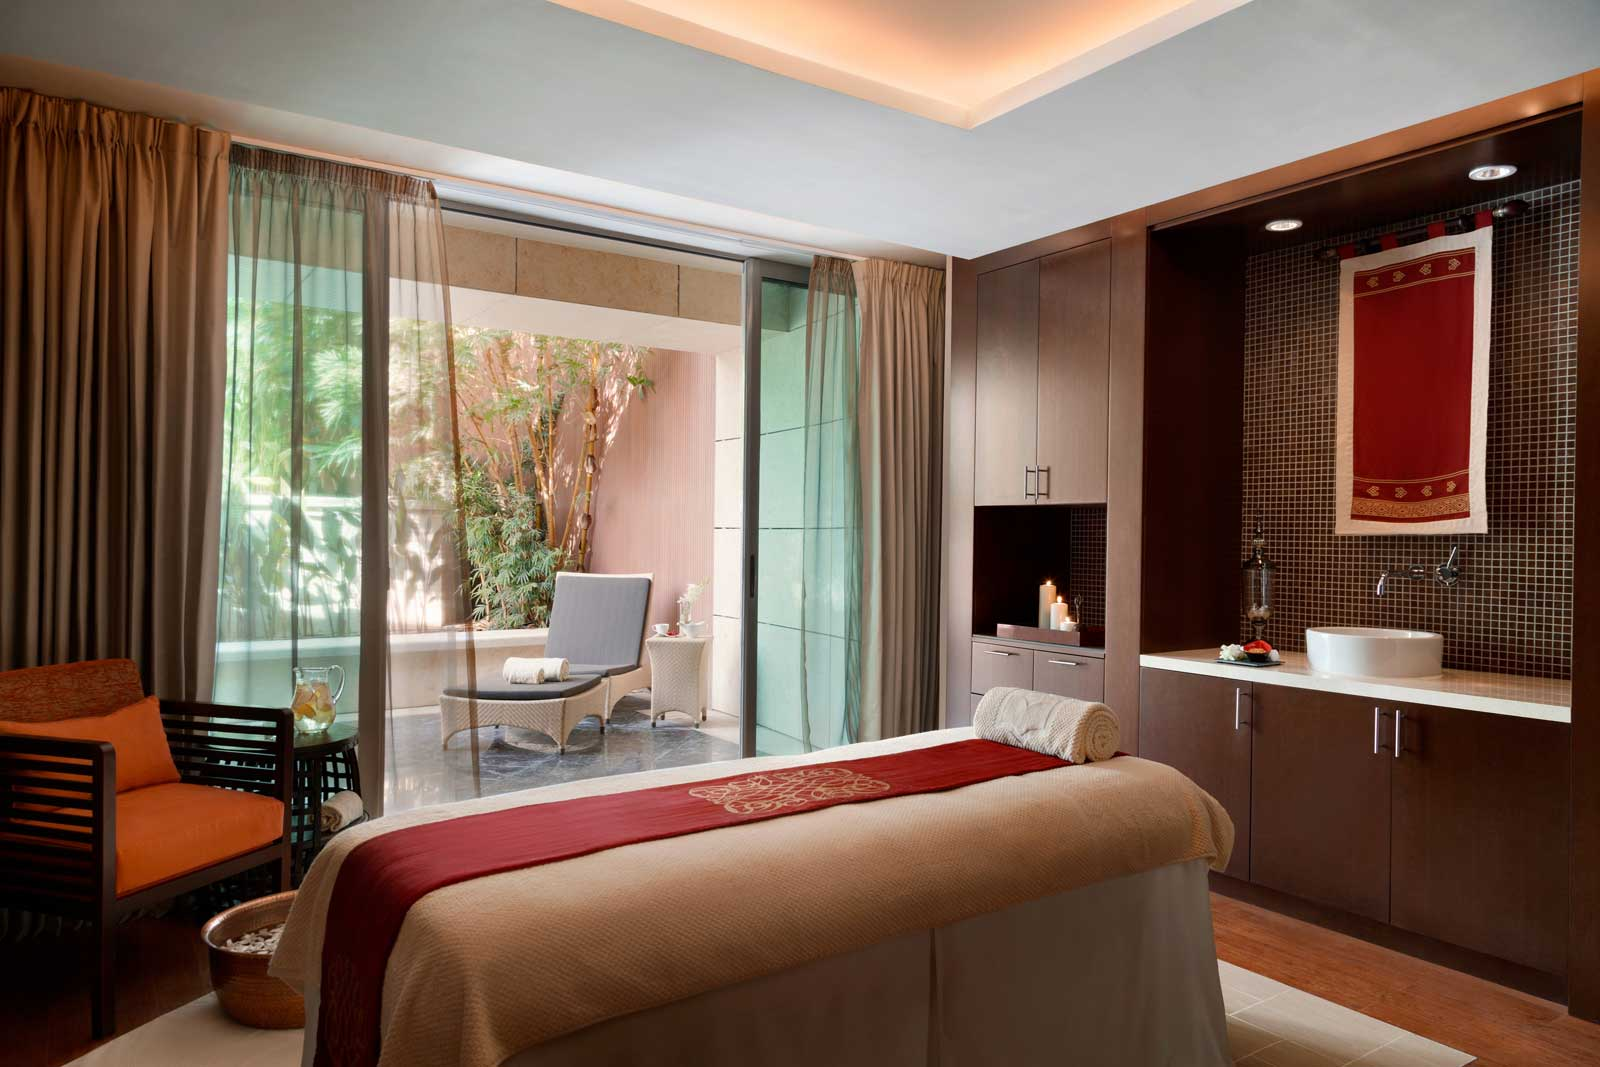 One of the spa rooms at the new Shangri-La, Doha